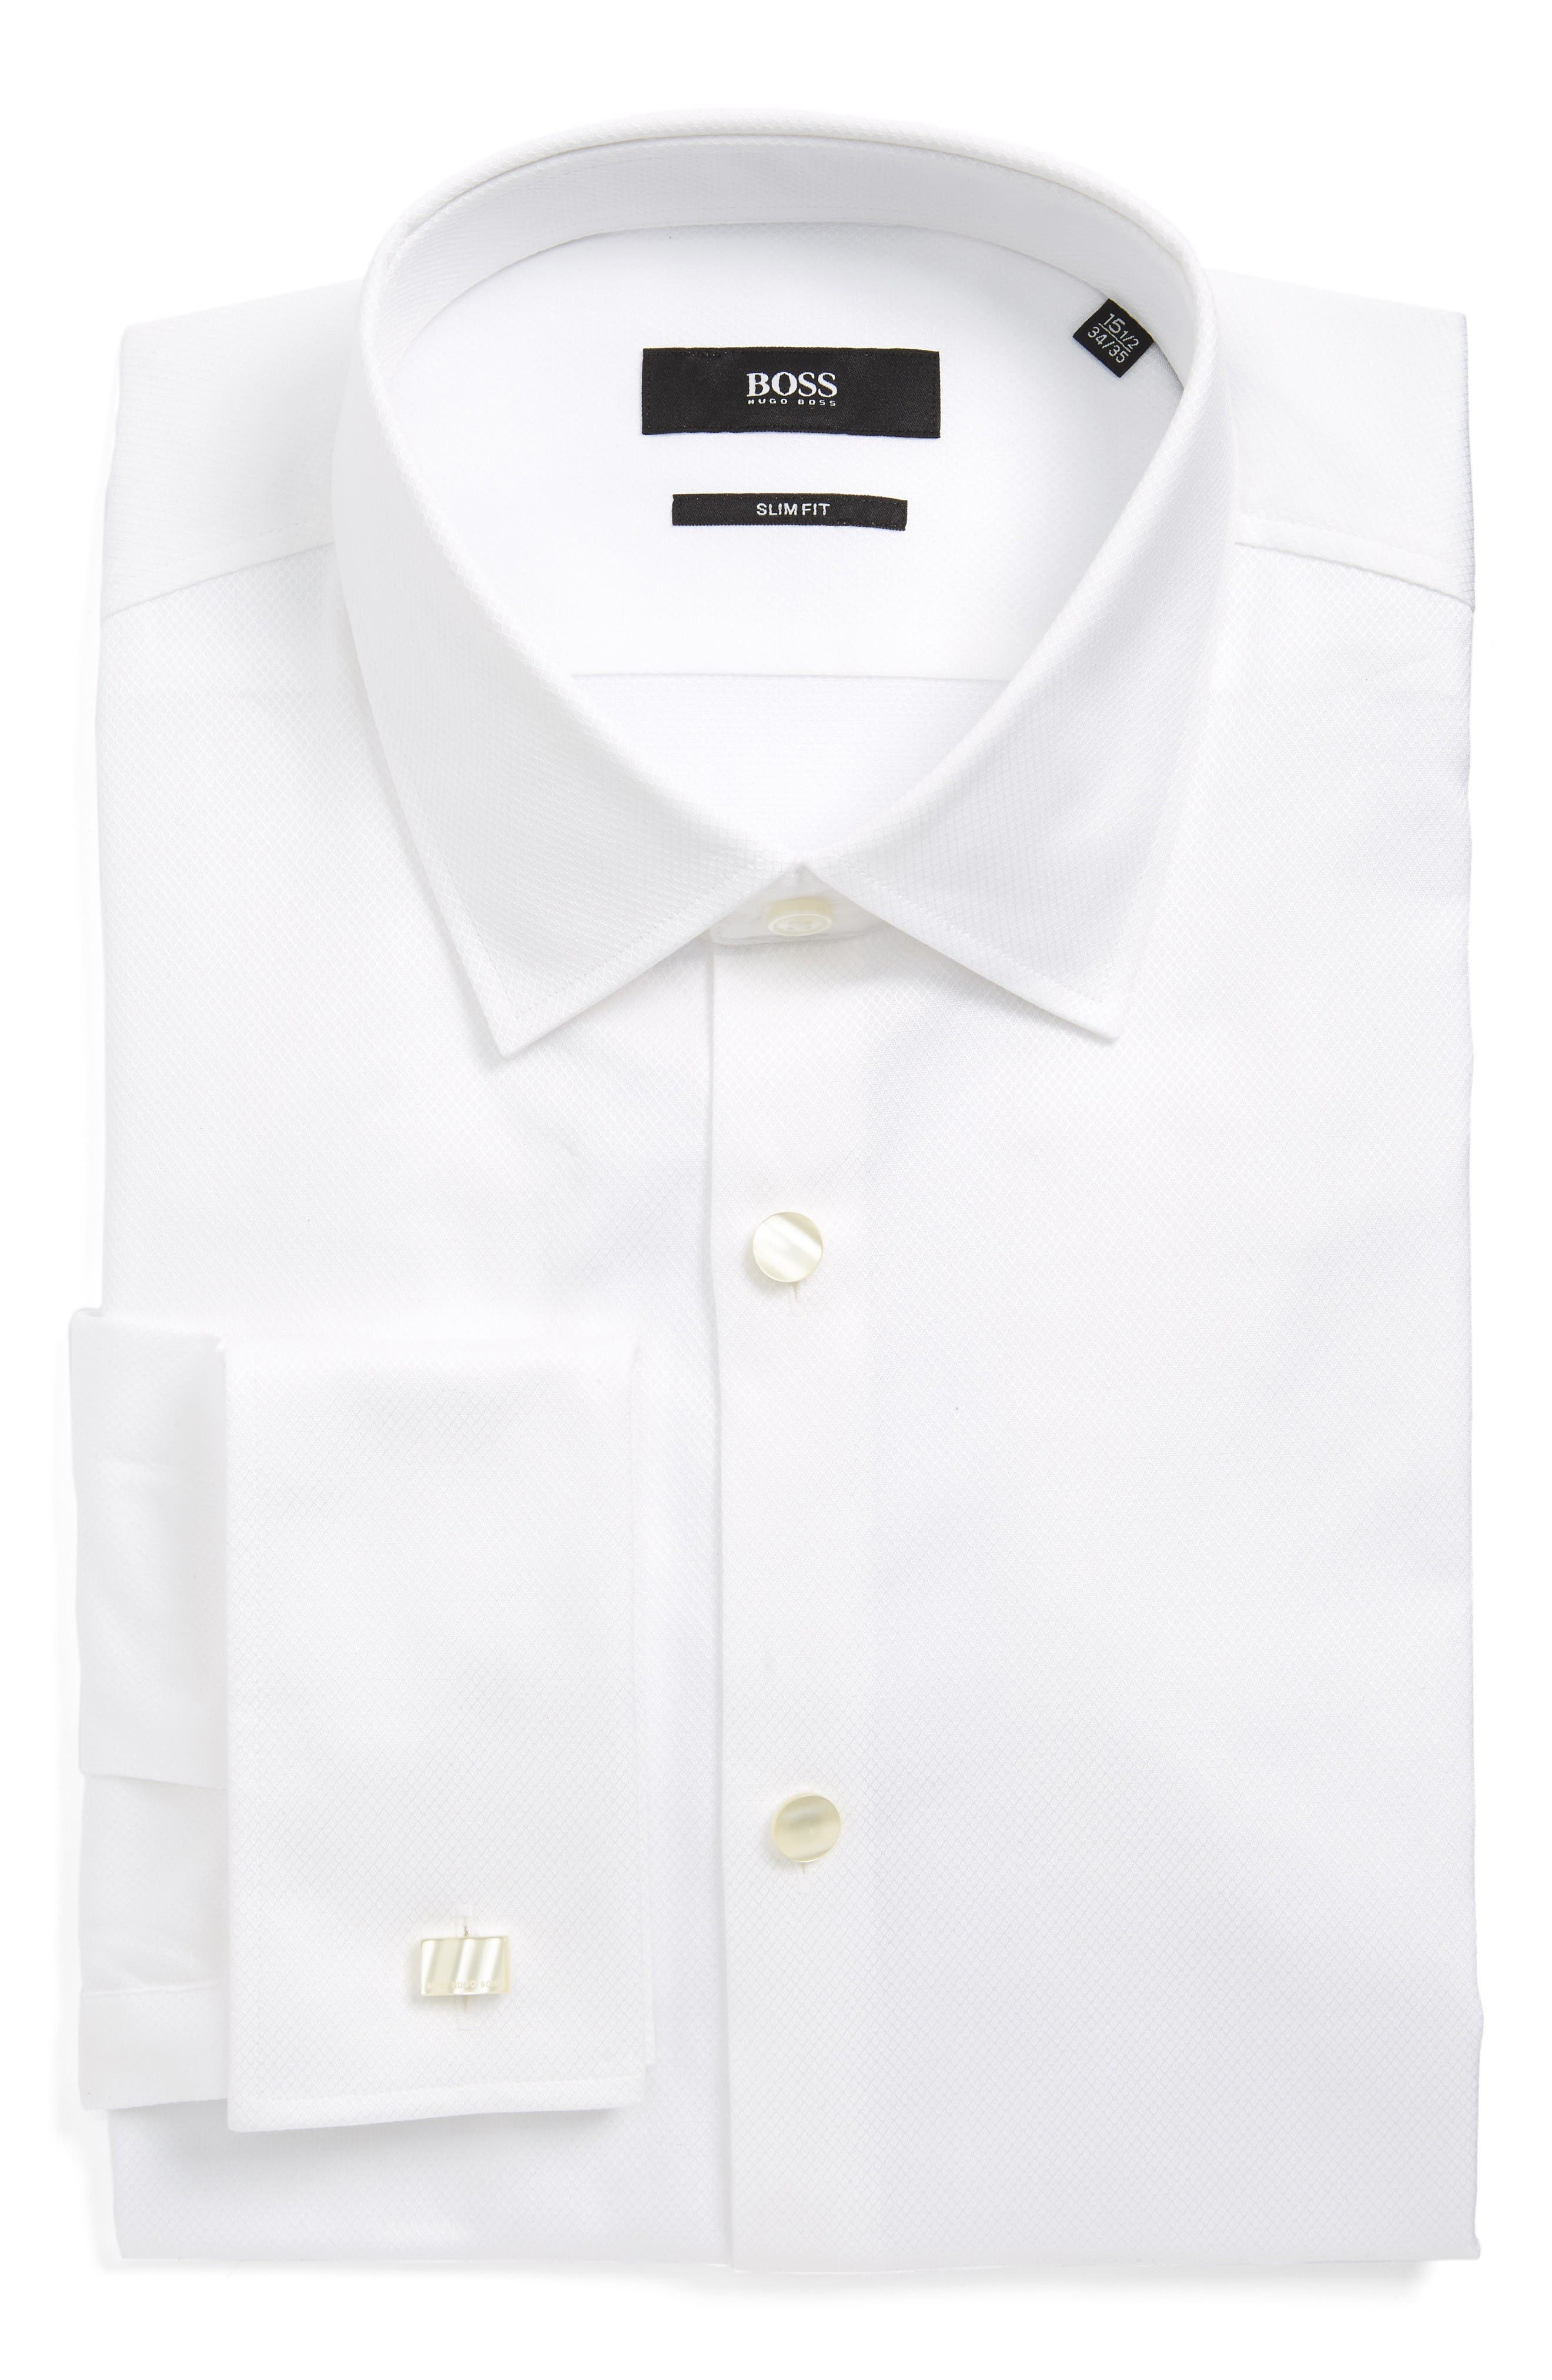 BOSS Jameson Slim Fit Diamond Weave French Cuff Tuxedo Shirt